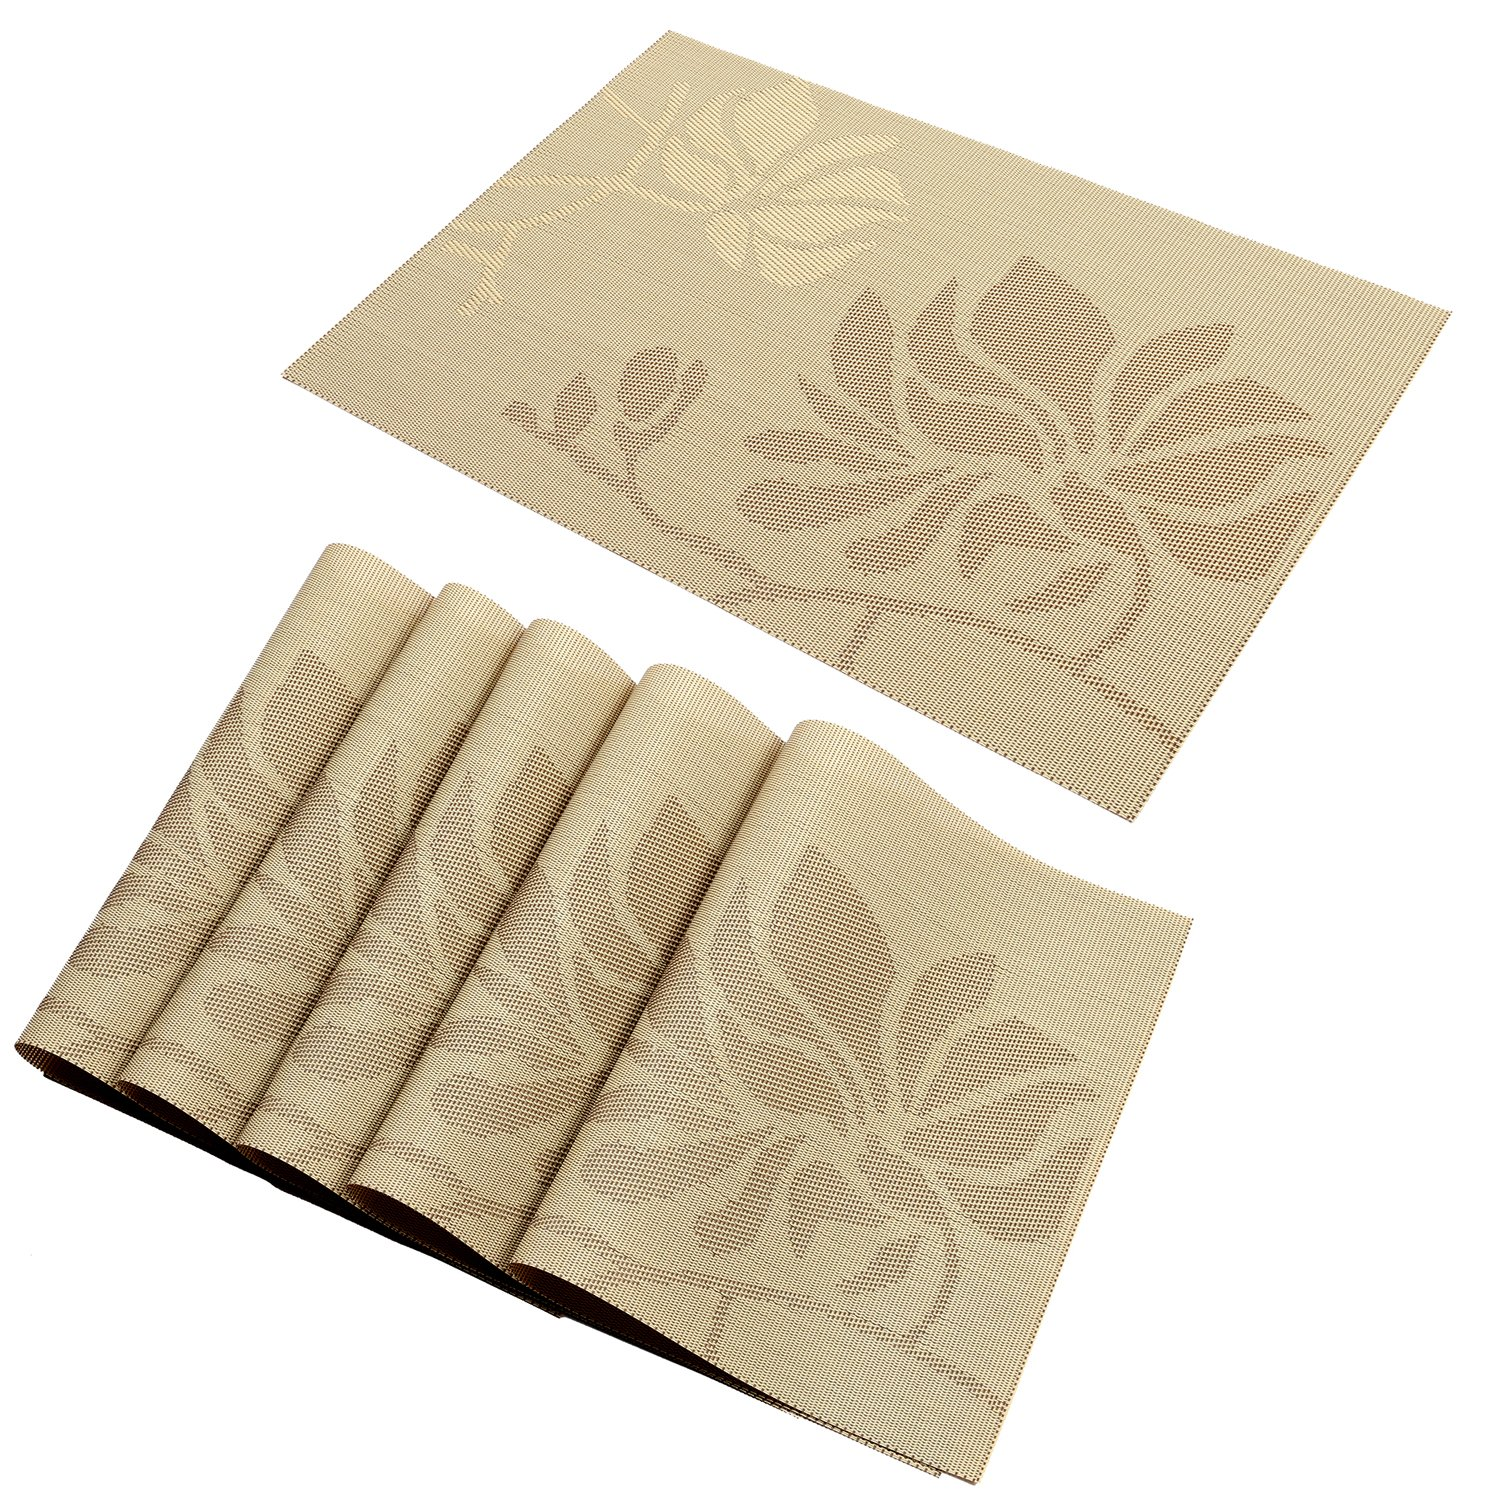 HEBE Placemats for Dining Table Heat Resistant Stain Resistant Washable PVC Placemats Set of 6 Kitchen Table Place Mats Woven Vinyl Placemat Cream